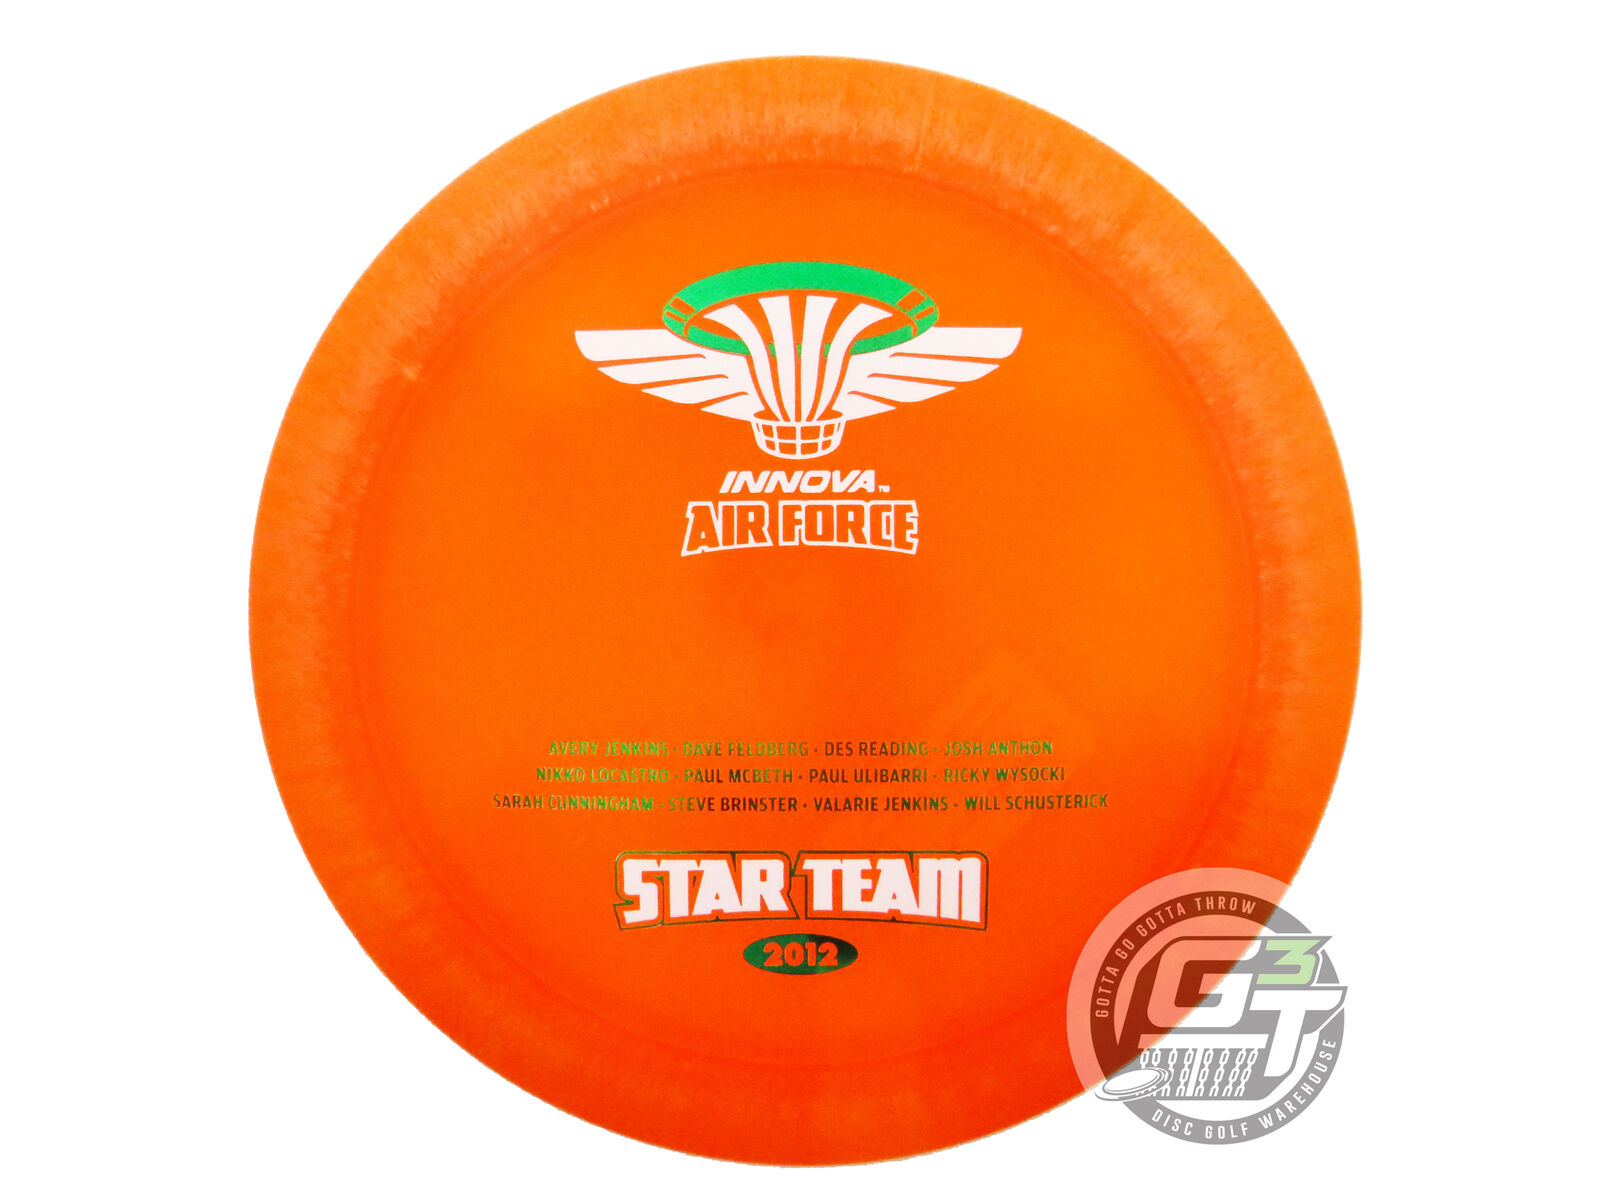 NEW Innova Blizzard Destroyer 158g arancia 2012 Star Team FELDBERG COLLECTION